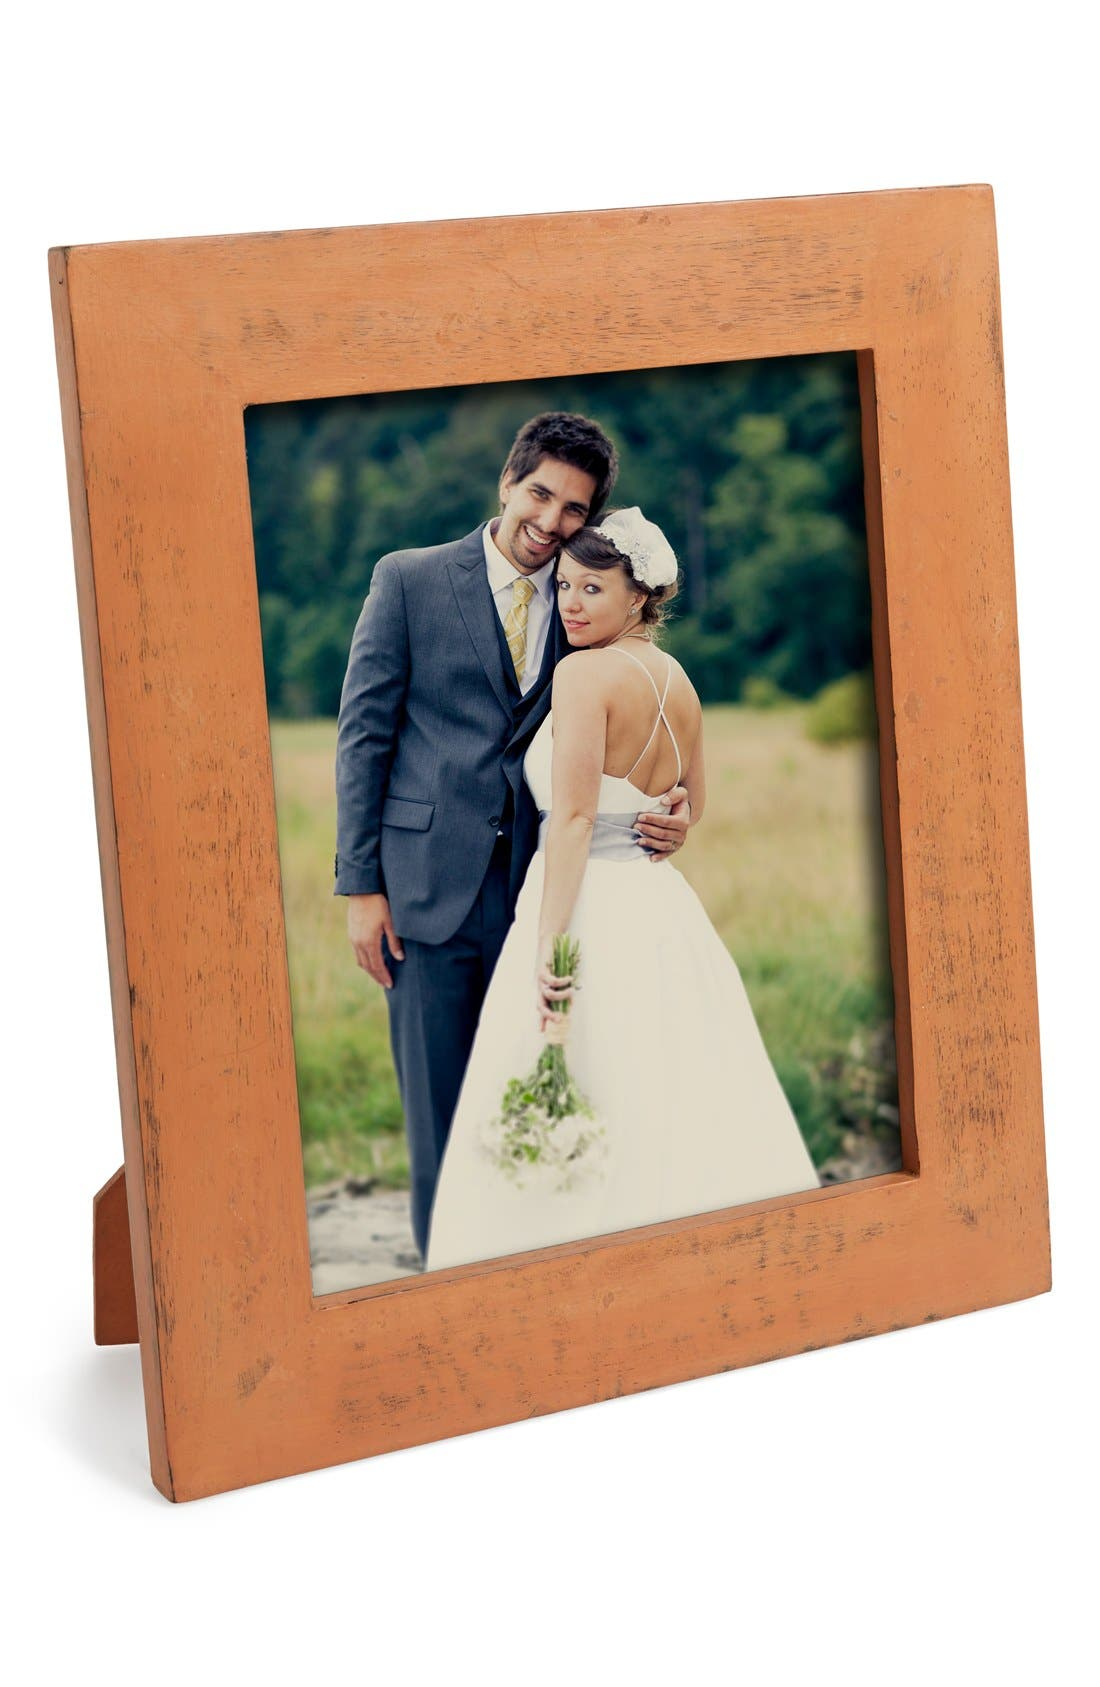 Alternate Image 1 Selected - MG Décor Distressed Picture Frame (4x6)